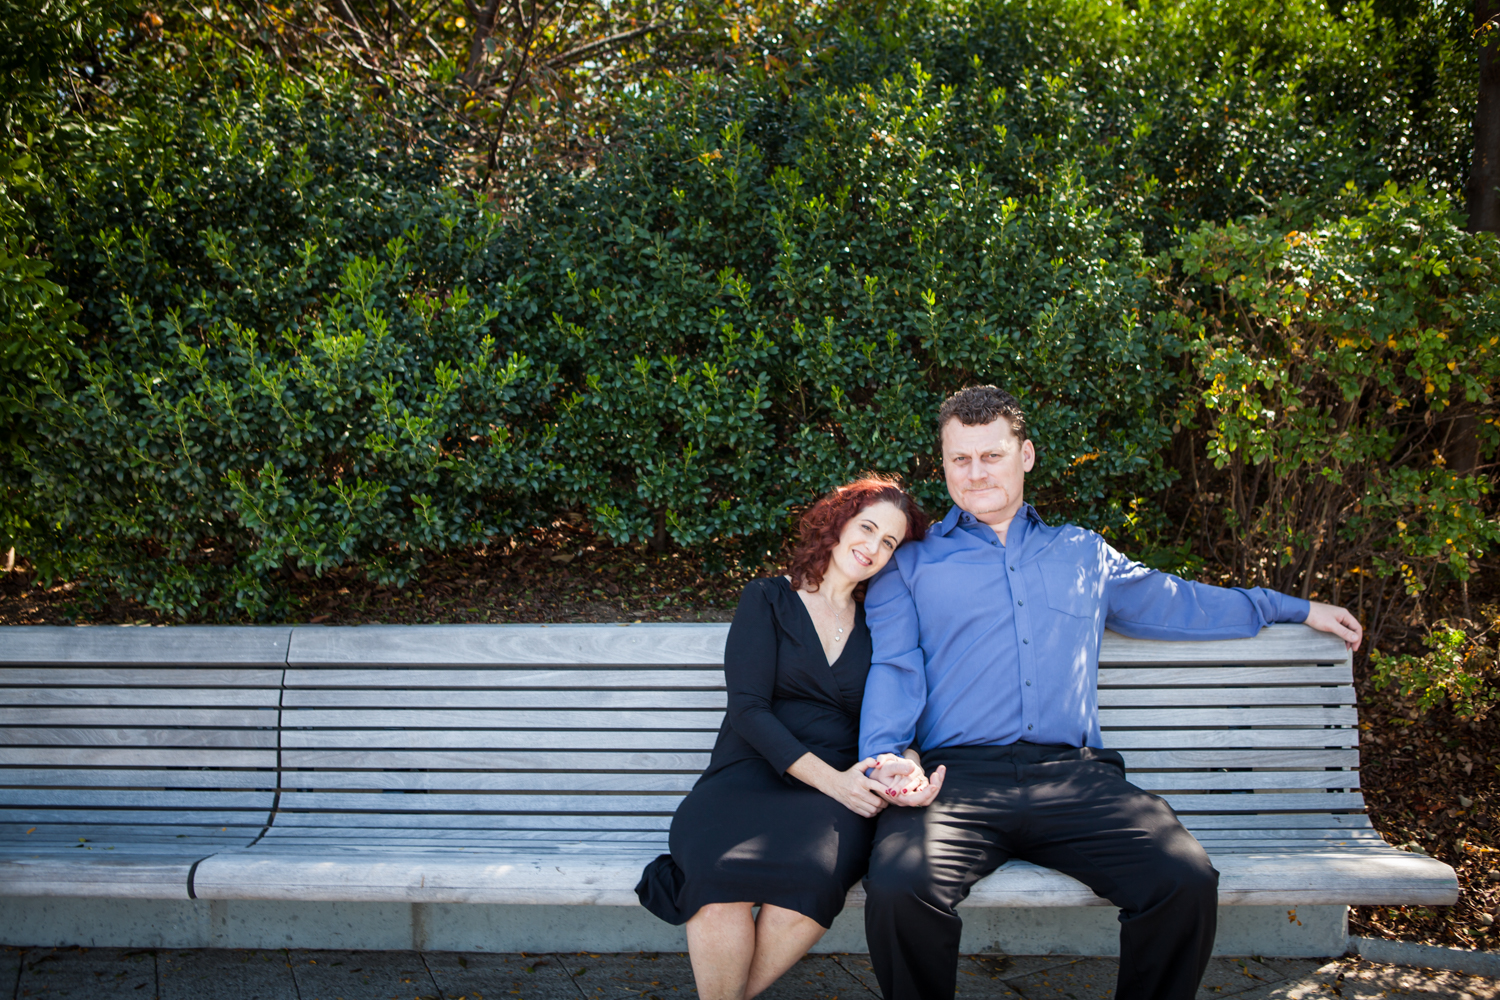 Couple sitting together on bench in park